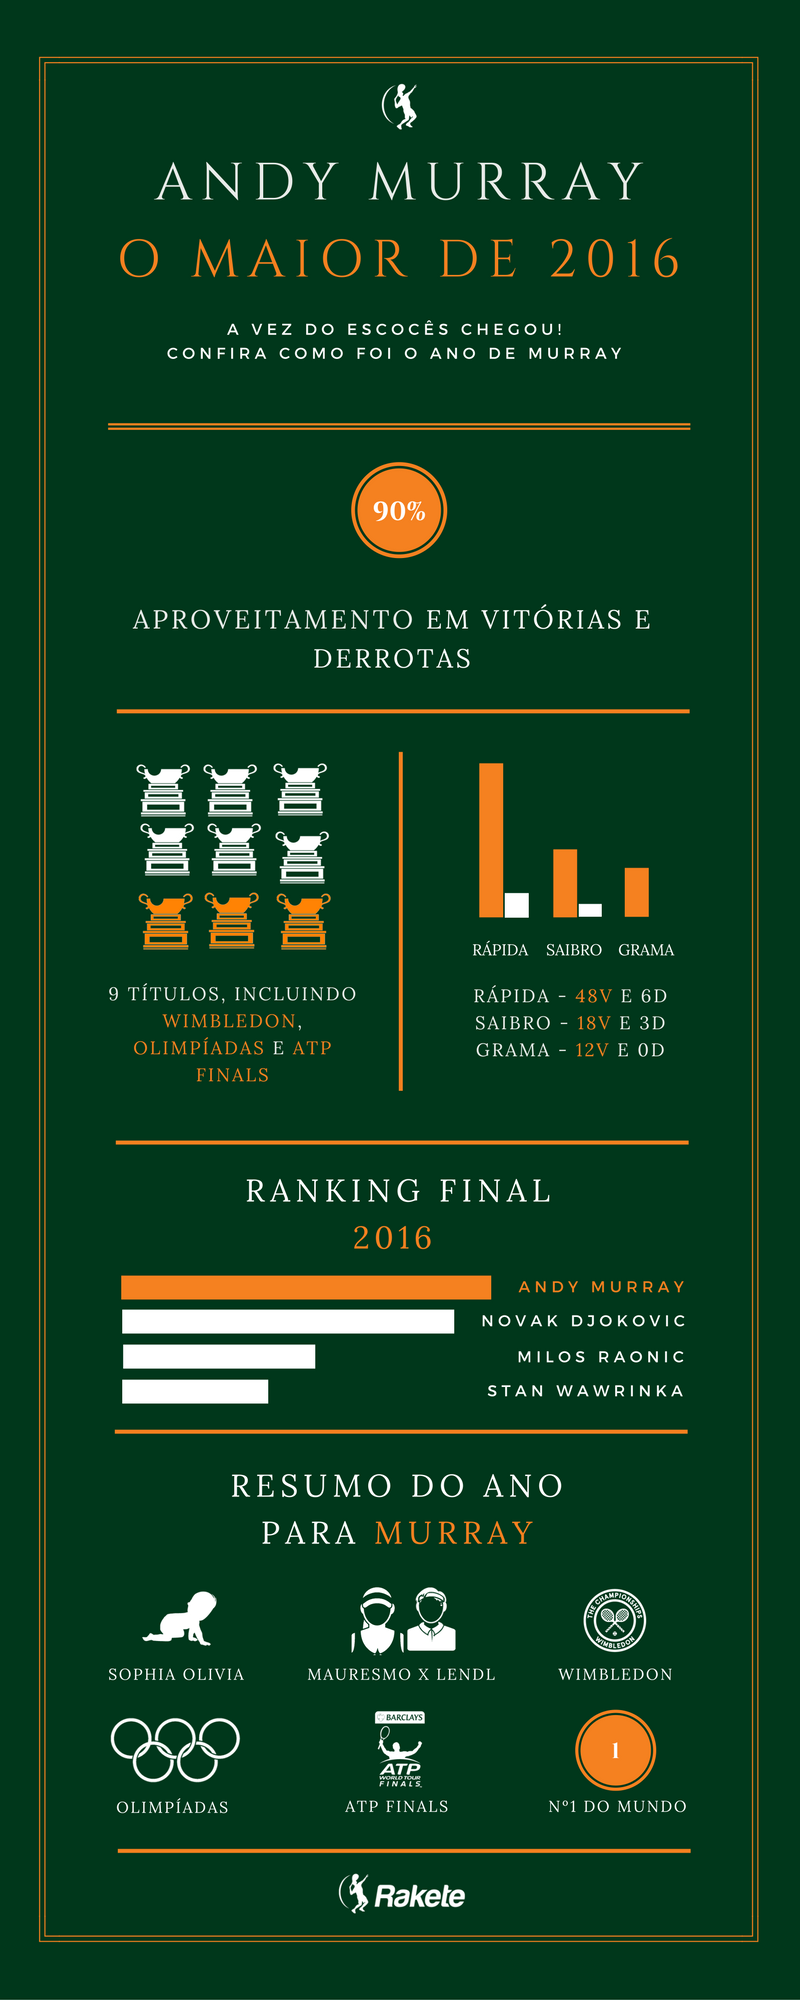 Andy Murray-infografico-tenis